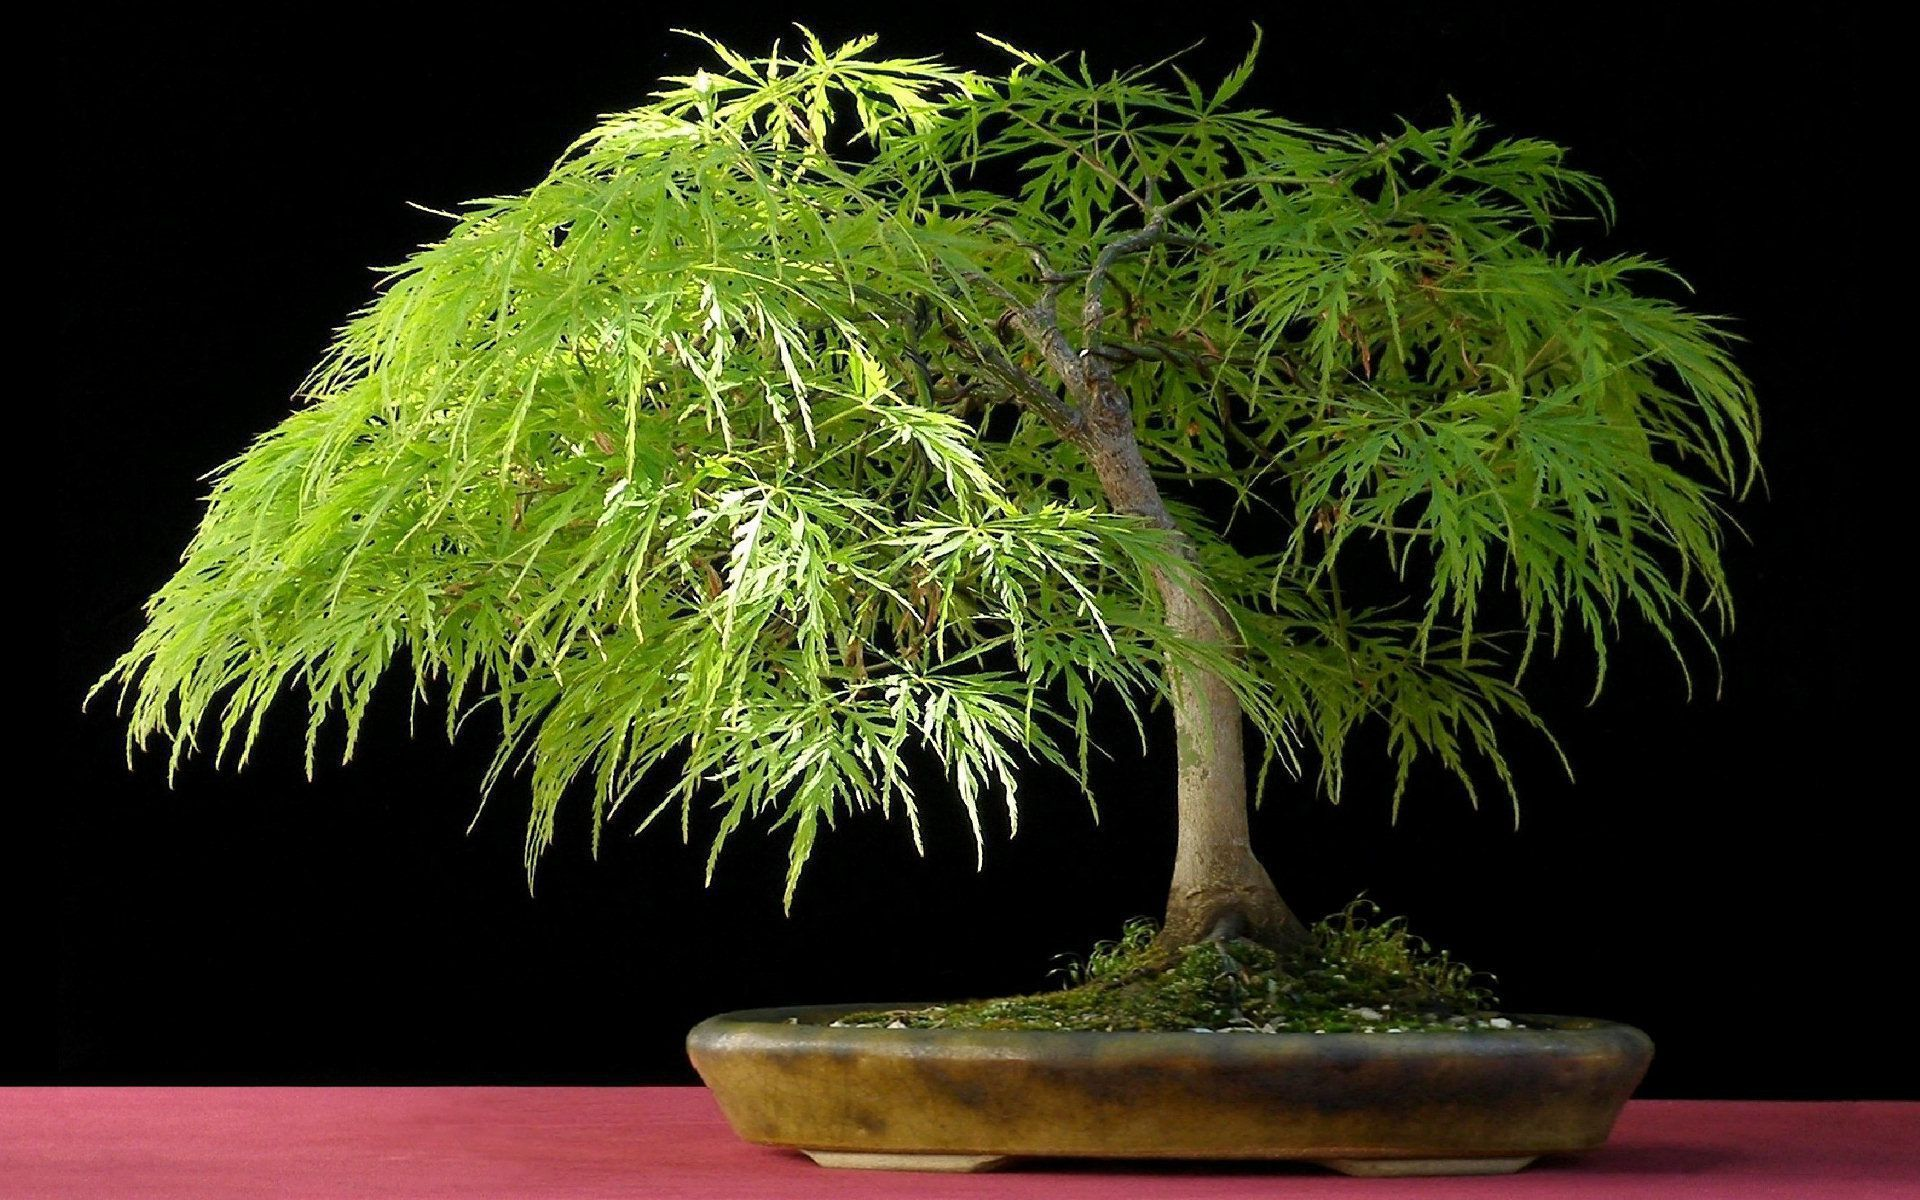 Download Bonsai Wallpaper For Your Desktop Bonsai Tree 995824 Hd Wallpaper Backgrounds Download